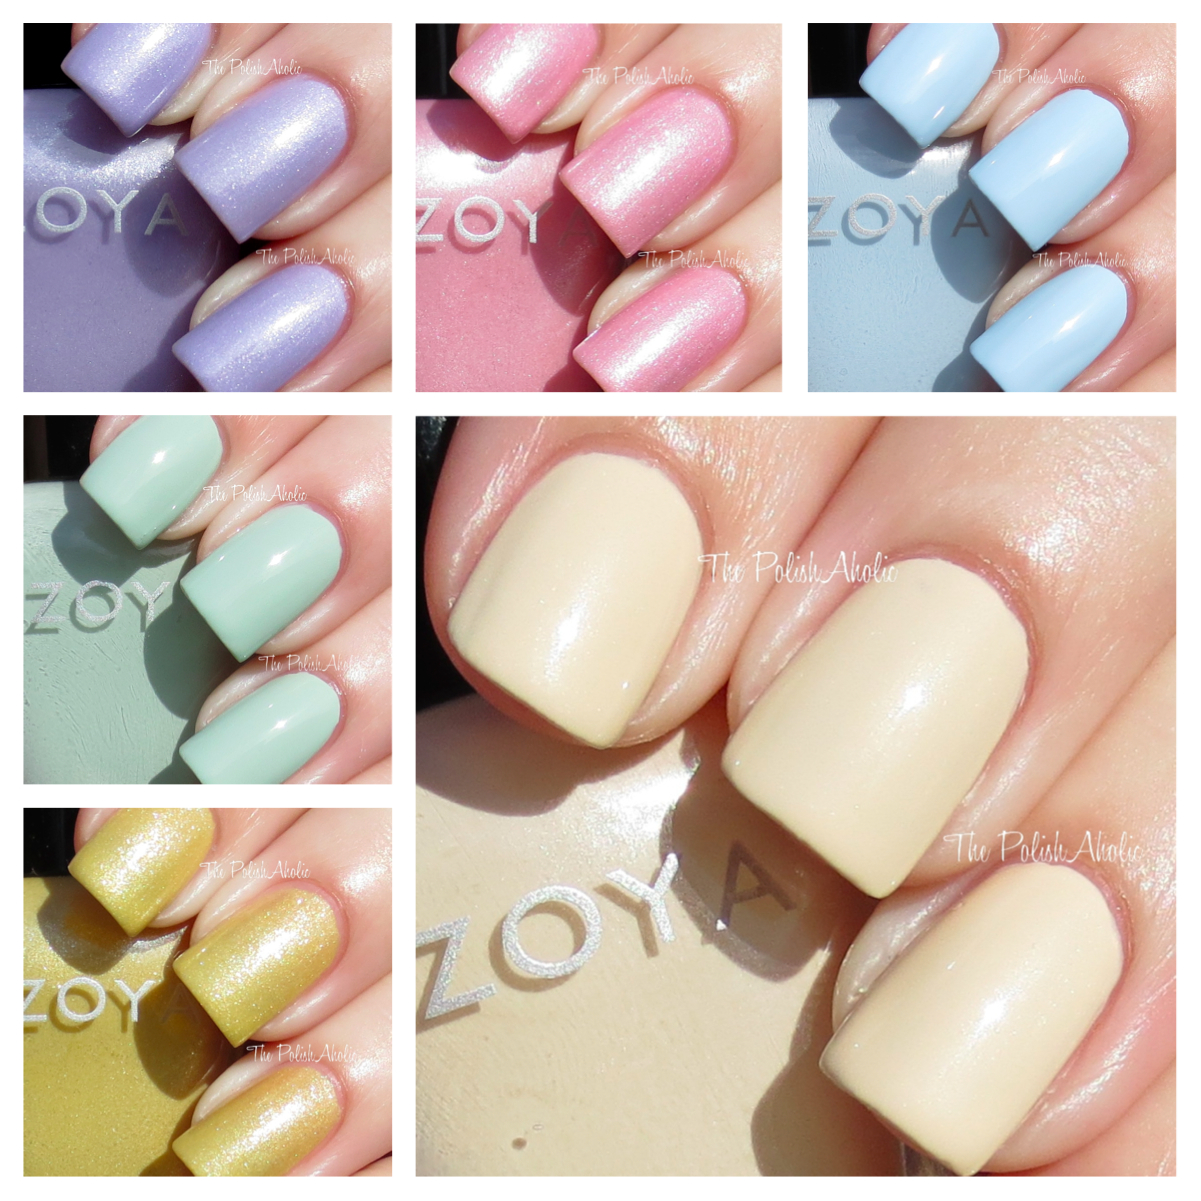 The PolishAholic: Zoya Spring 2013 Lovely Collection Swatches